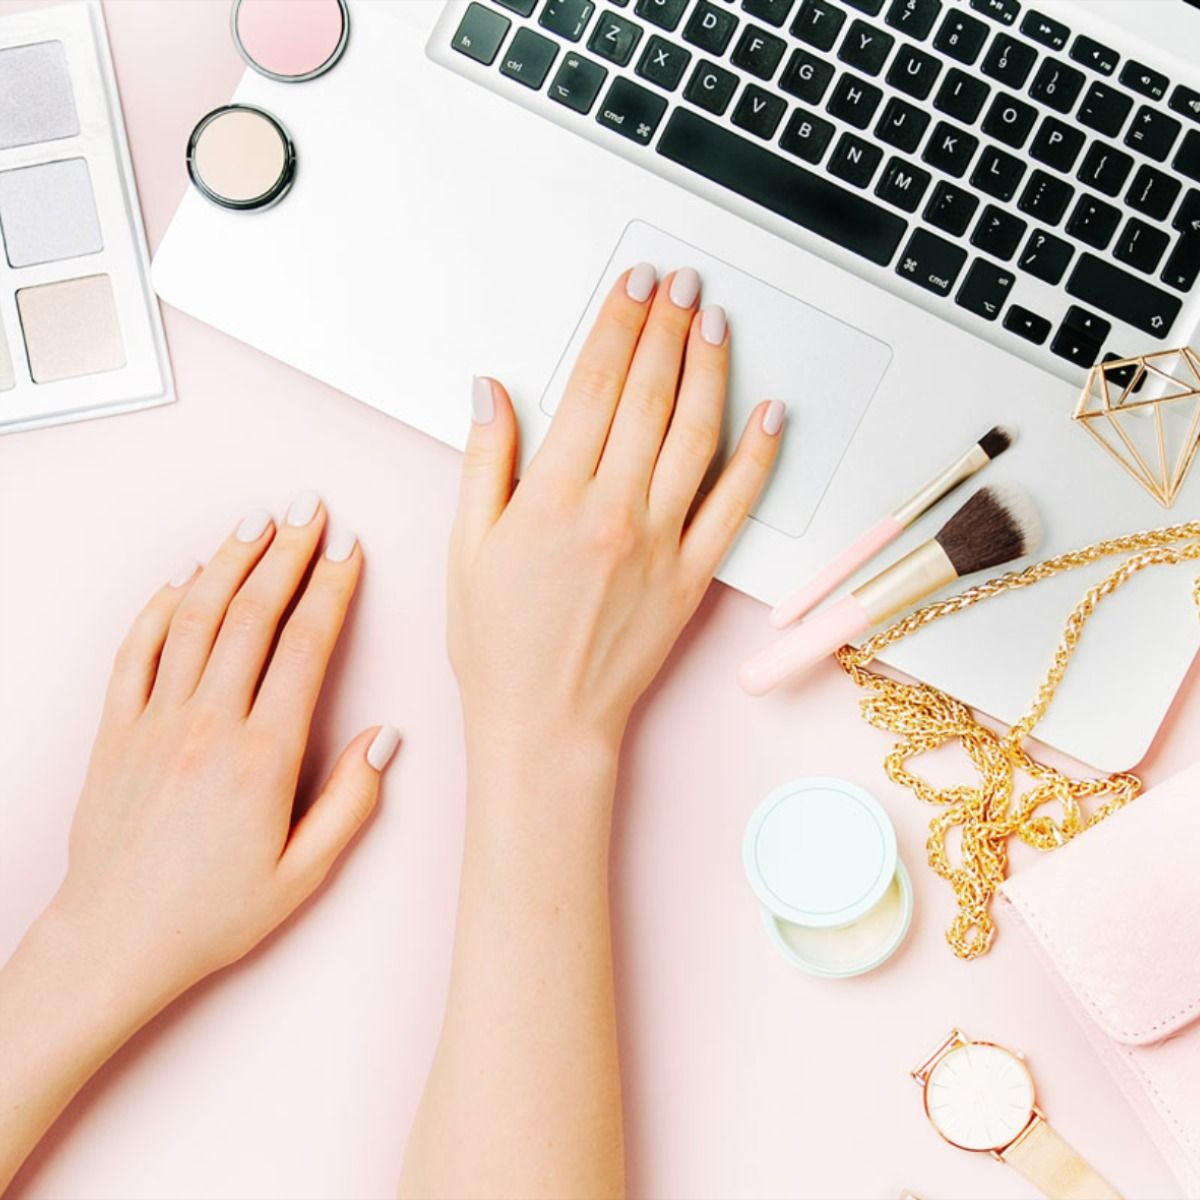 From the humorous, these are the beauty blogs that every beauty lover needs to be following! #beautyblogger #beautyblogs #makeupblogger #skincareblogger #makeup #beautywithhollie